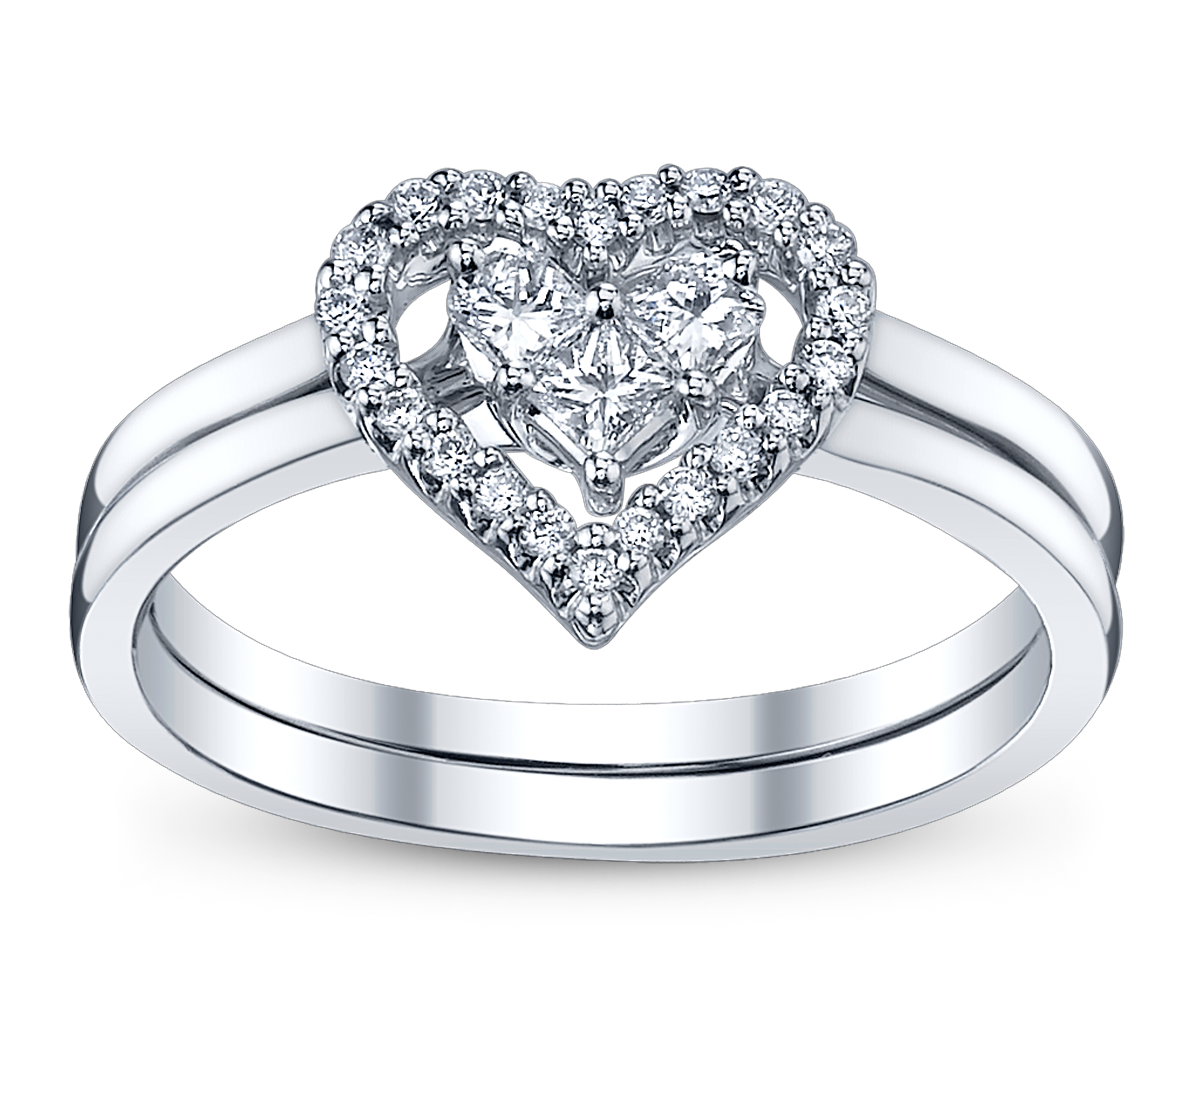 Wedding images free clipart. Diamond ring png clip art transparent stock